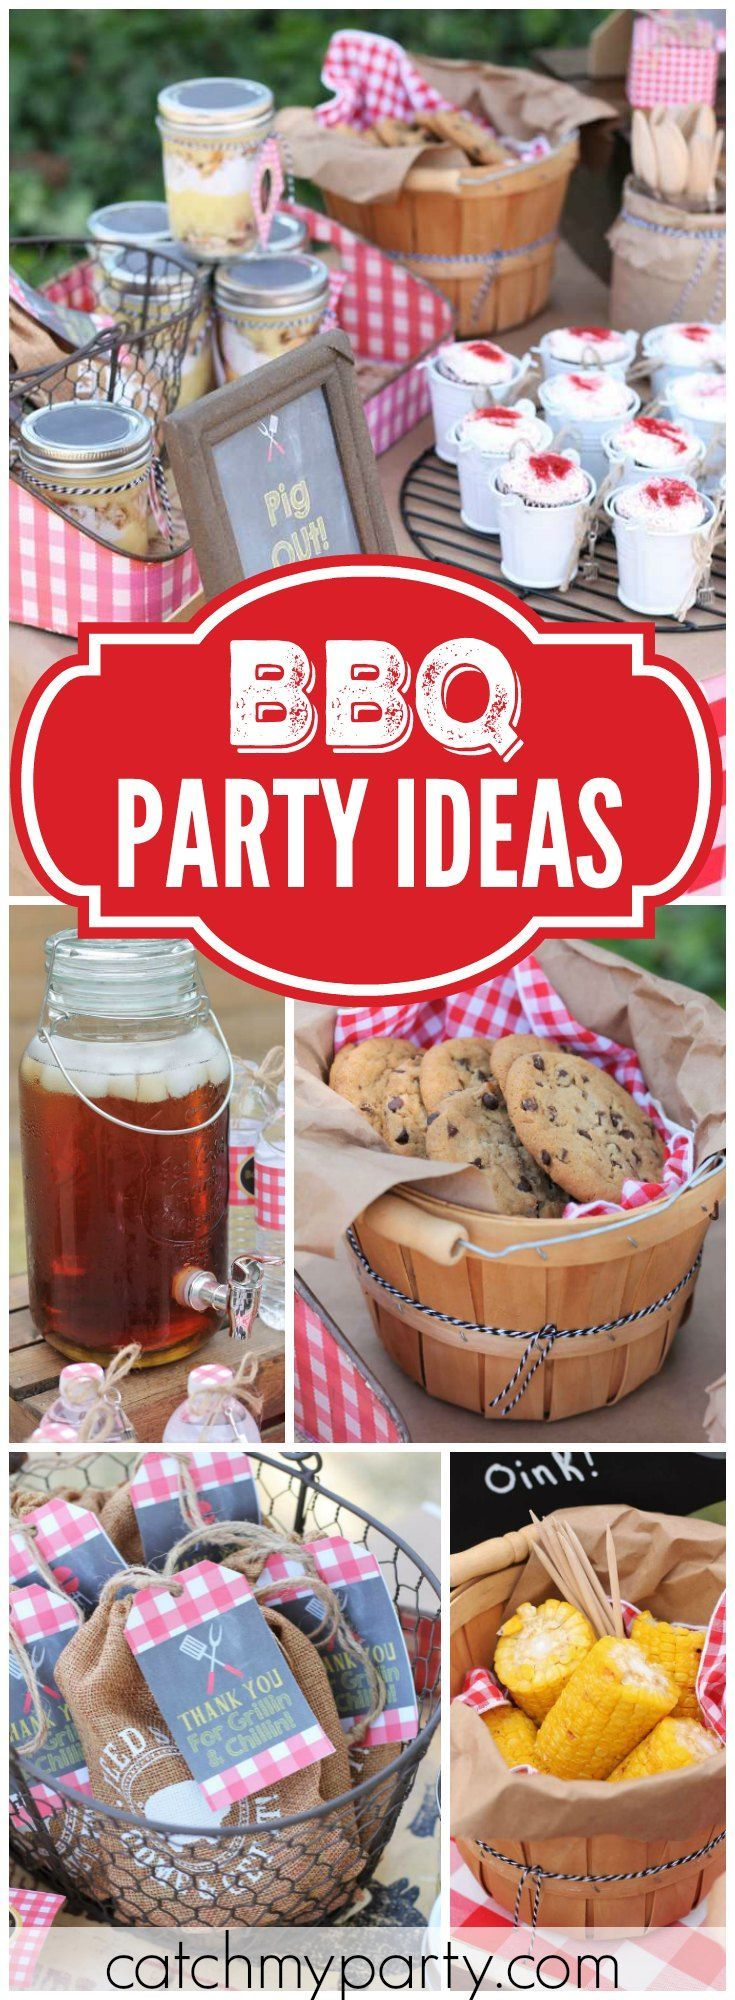 1211 Best Images About Party Themes On Pinterest